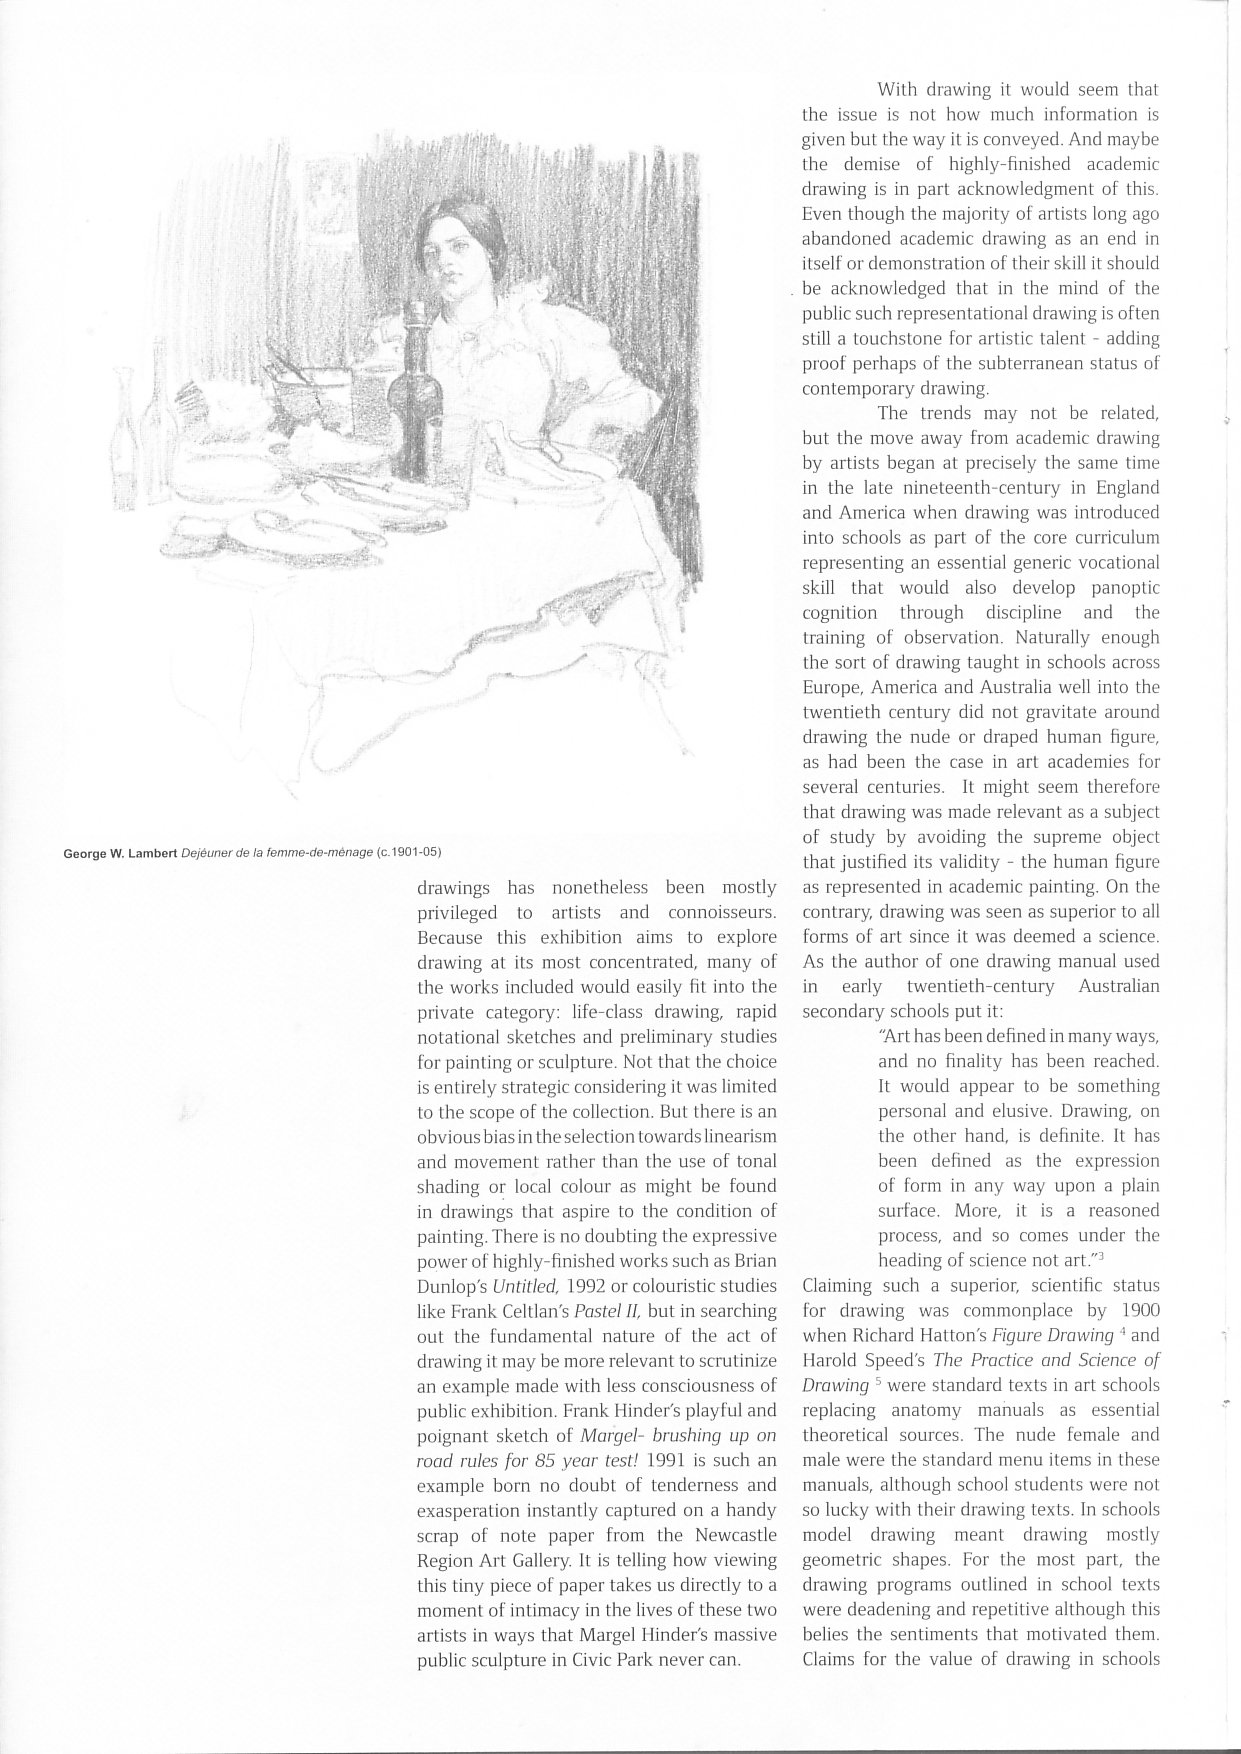 DrawingCentre-essay (1)_Page_2.jpg